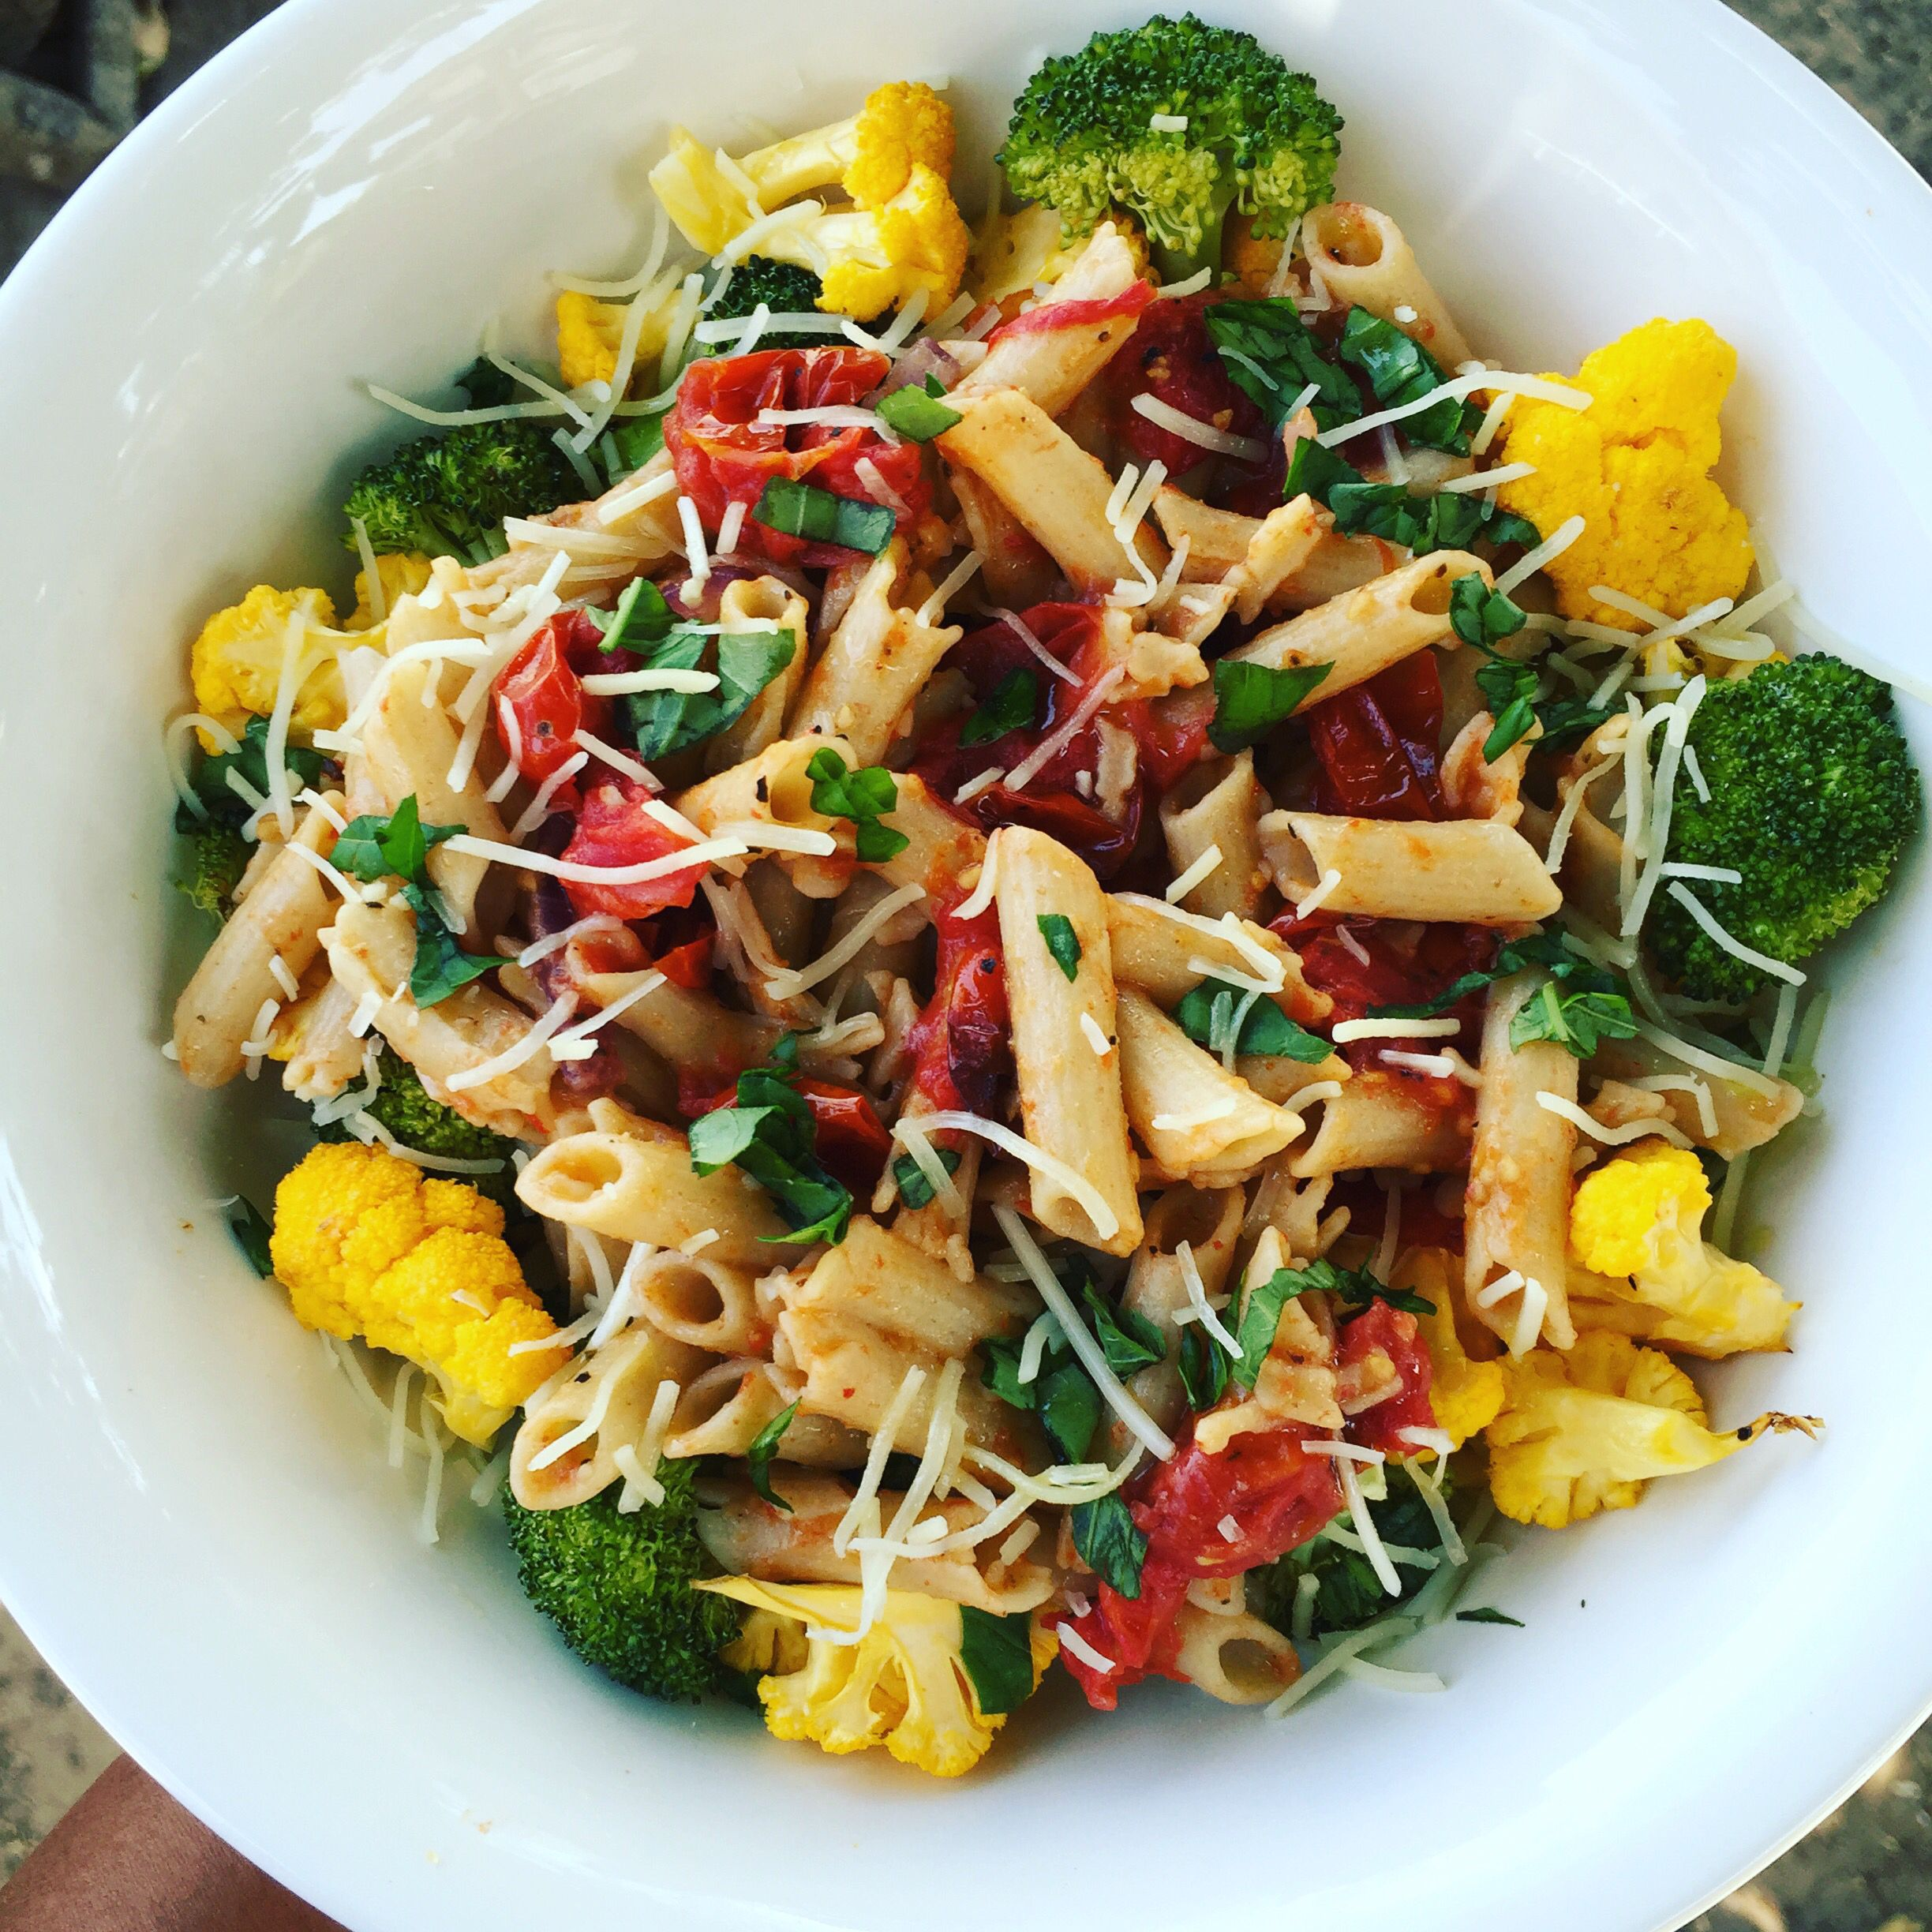 Good Afternoon lovelies!! Quinoa Pasta with Roasted Vegetables!! A very simple Lunch for the family. #over40 #mindbodygreen #healthy #colorfulfoodie #loveyourbody #organic #wholefoods #healthychoices #healthyfood #healthyfoodshare #healthylifestyles #healthyfoodporn #foodie #healthymeal #foodporn